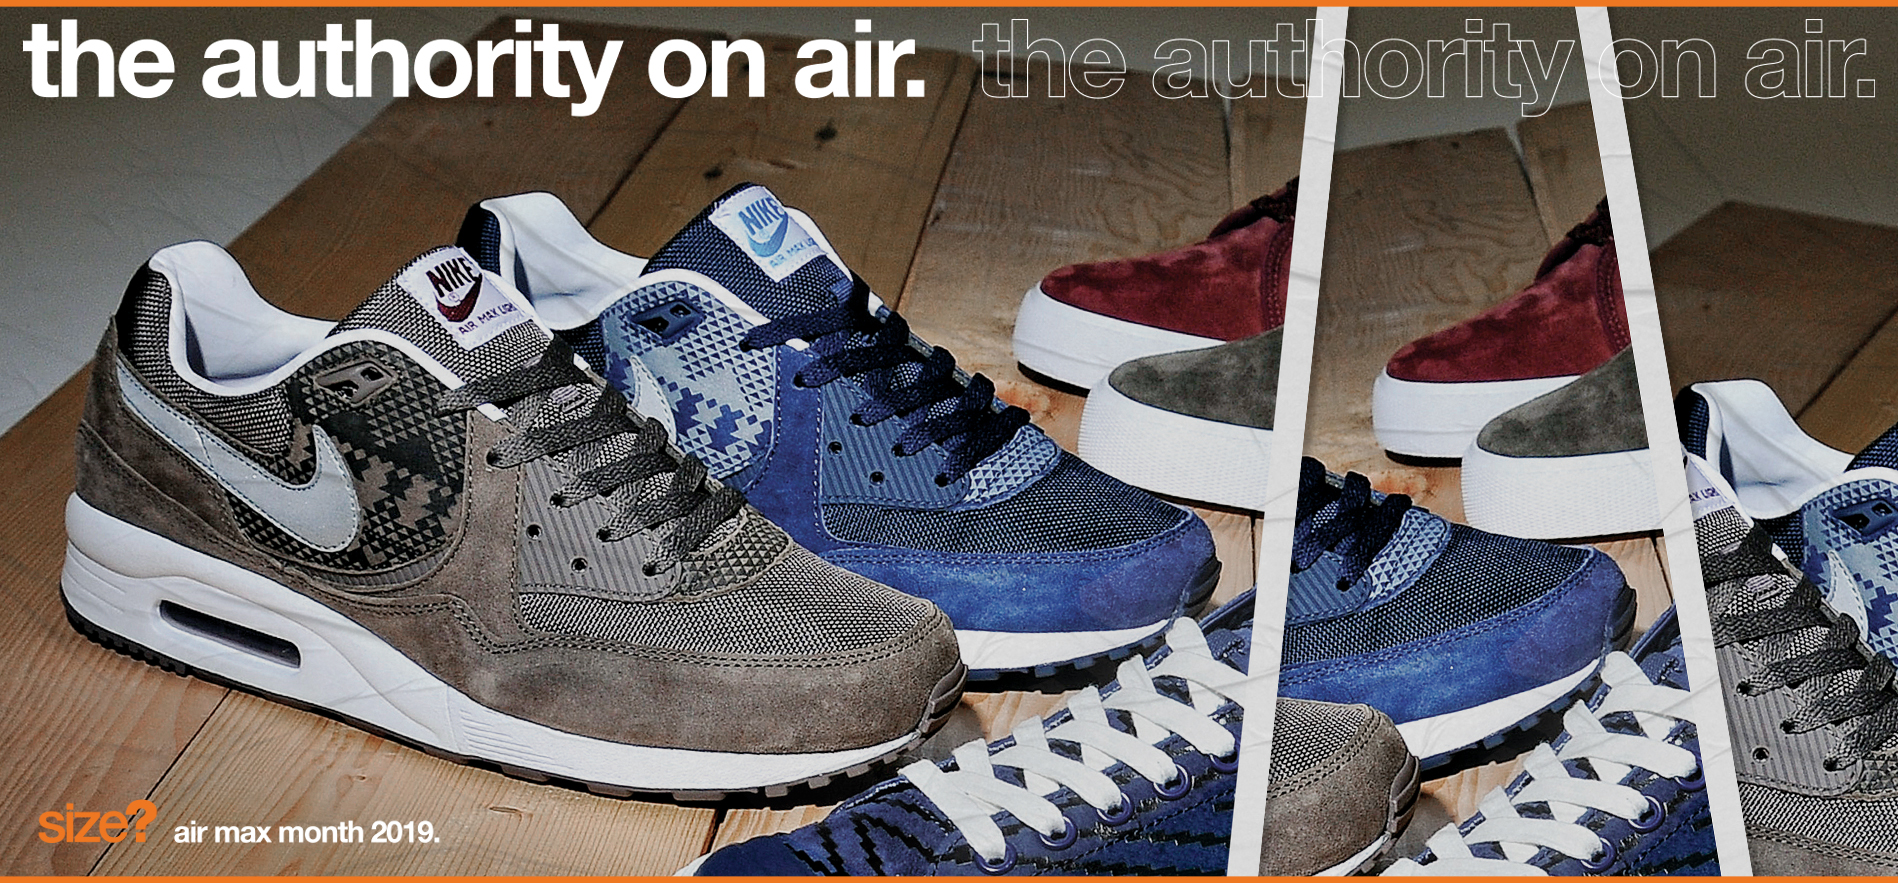 the authority on air – Air Max Light 'Geometric'